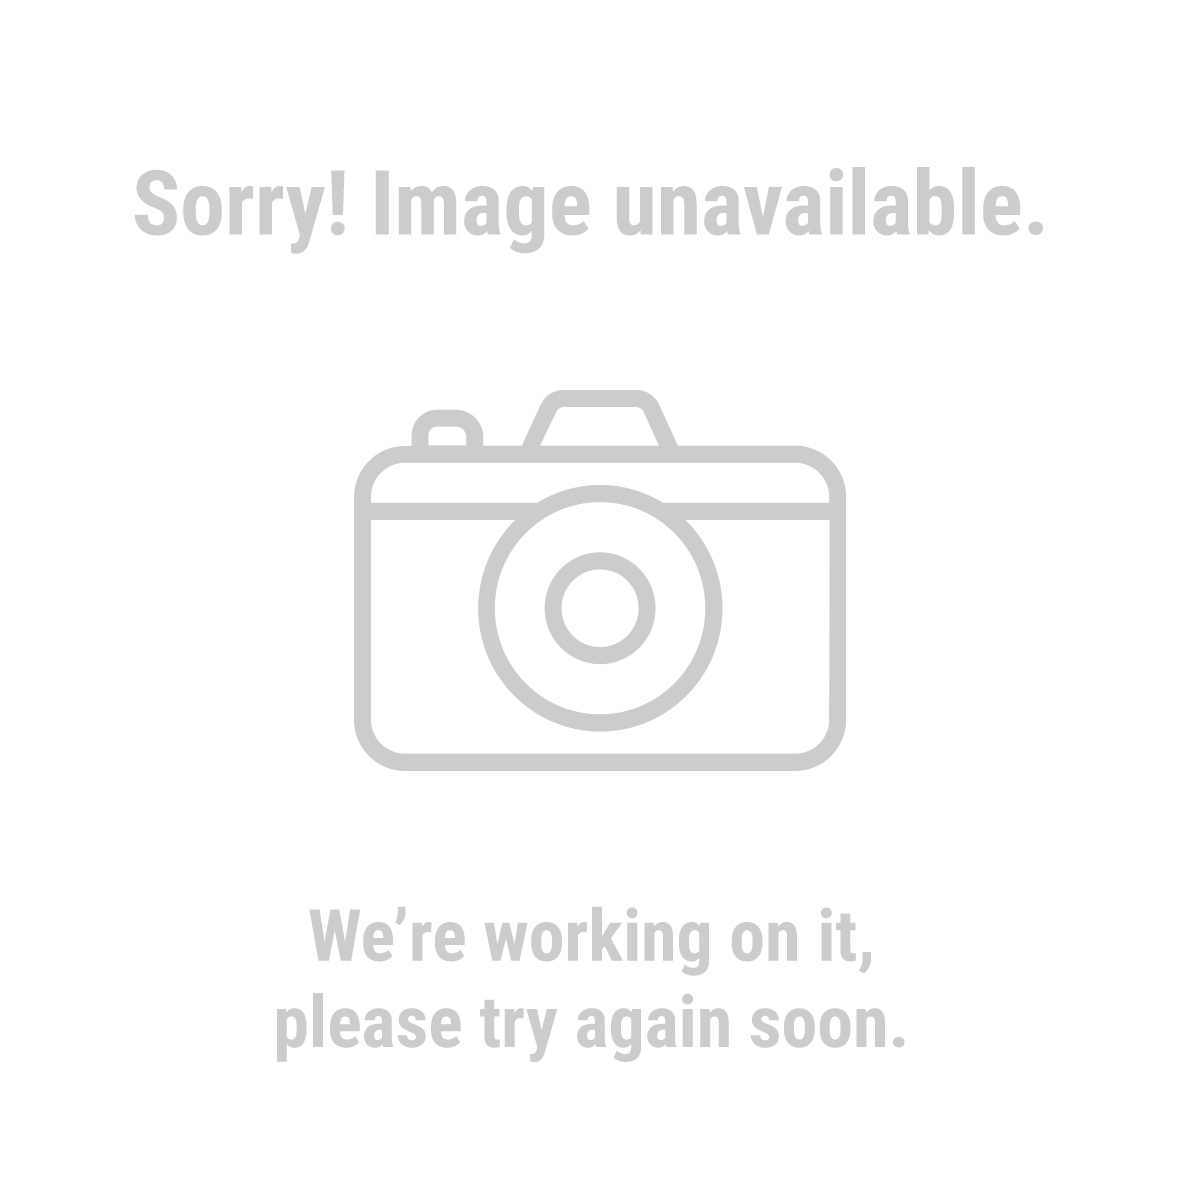 "Pittsburgh 94426 7 Piece 3/8"" Crowfoot SAE Wrench Set"